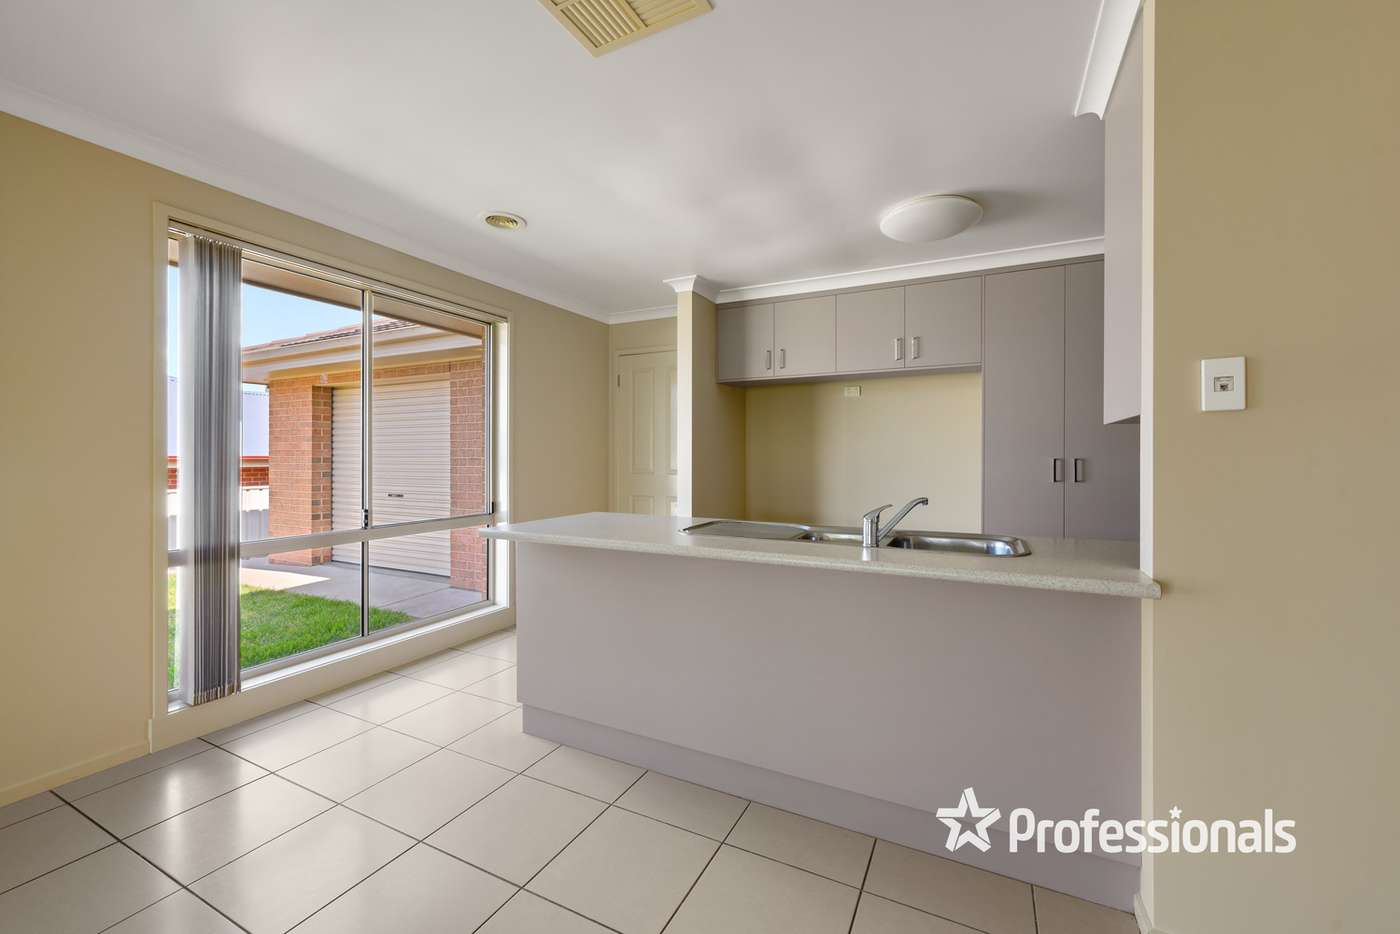 Sixth view of Homely house listing, 10 Millar Court, Wodonga VIC 3690